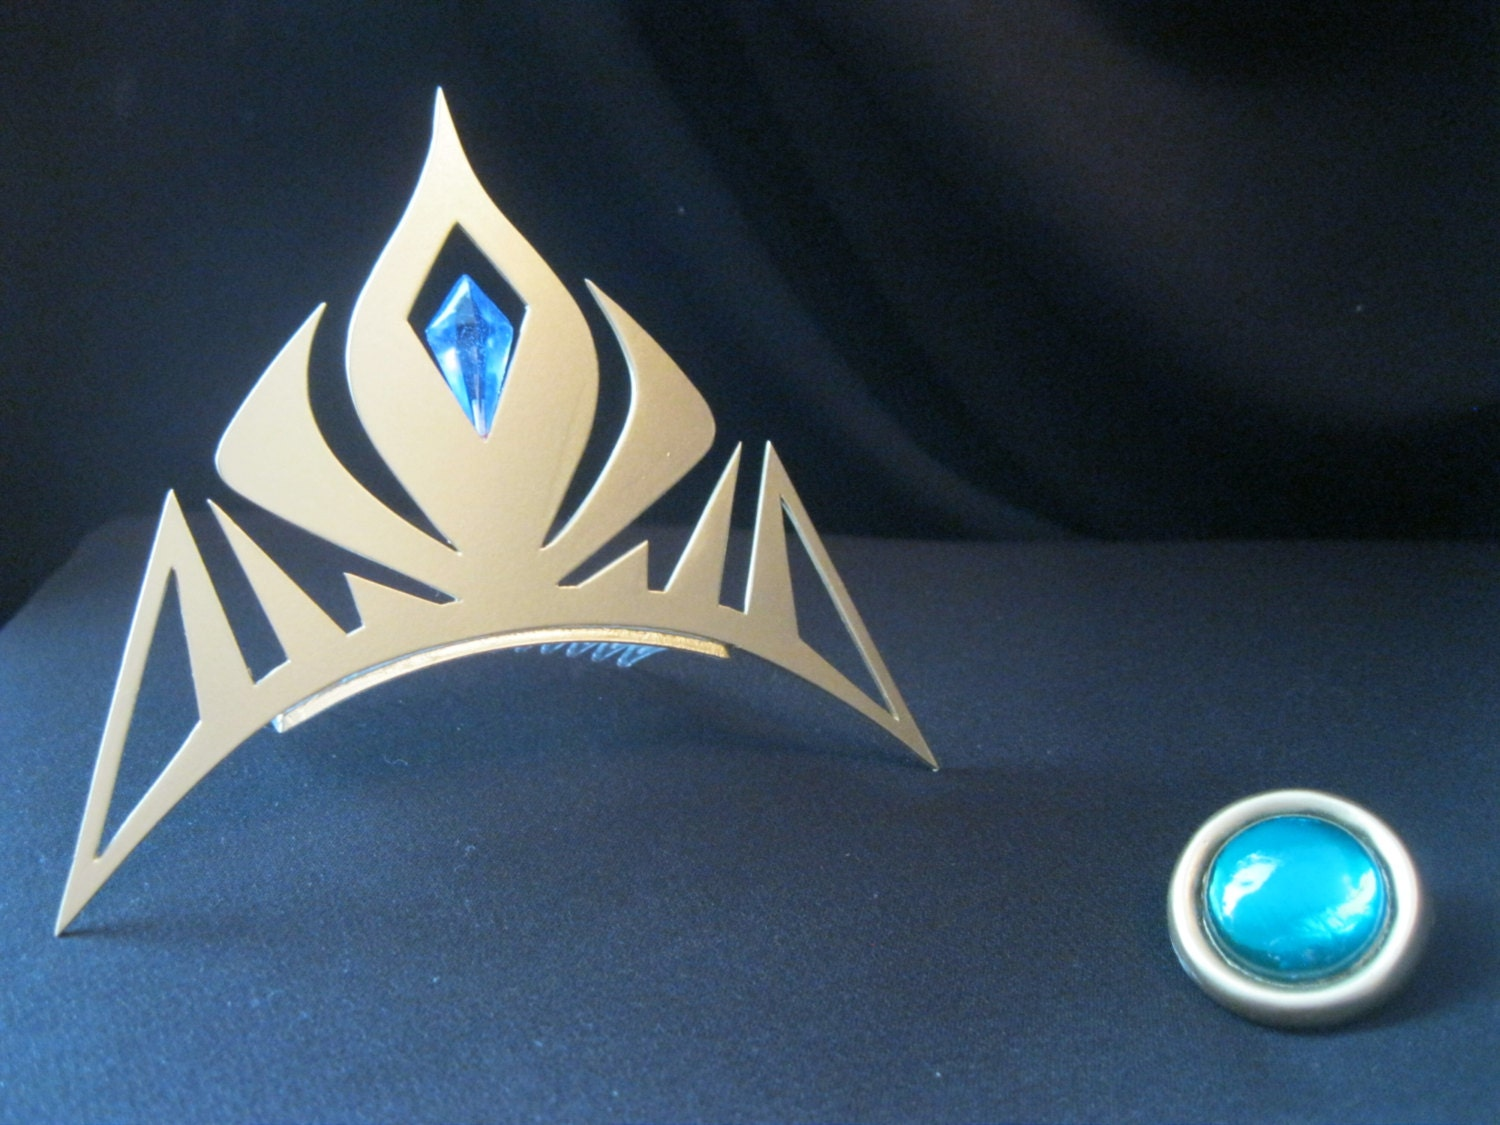 elsa crown from frozen gem pin for cape by uniquecosplayprops